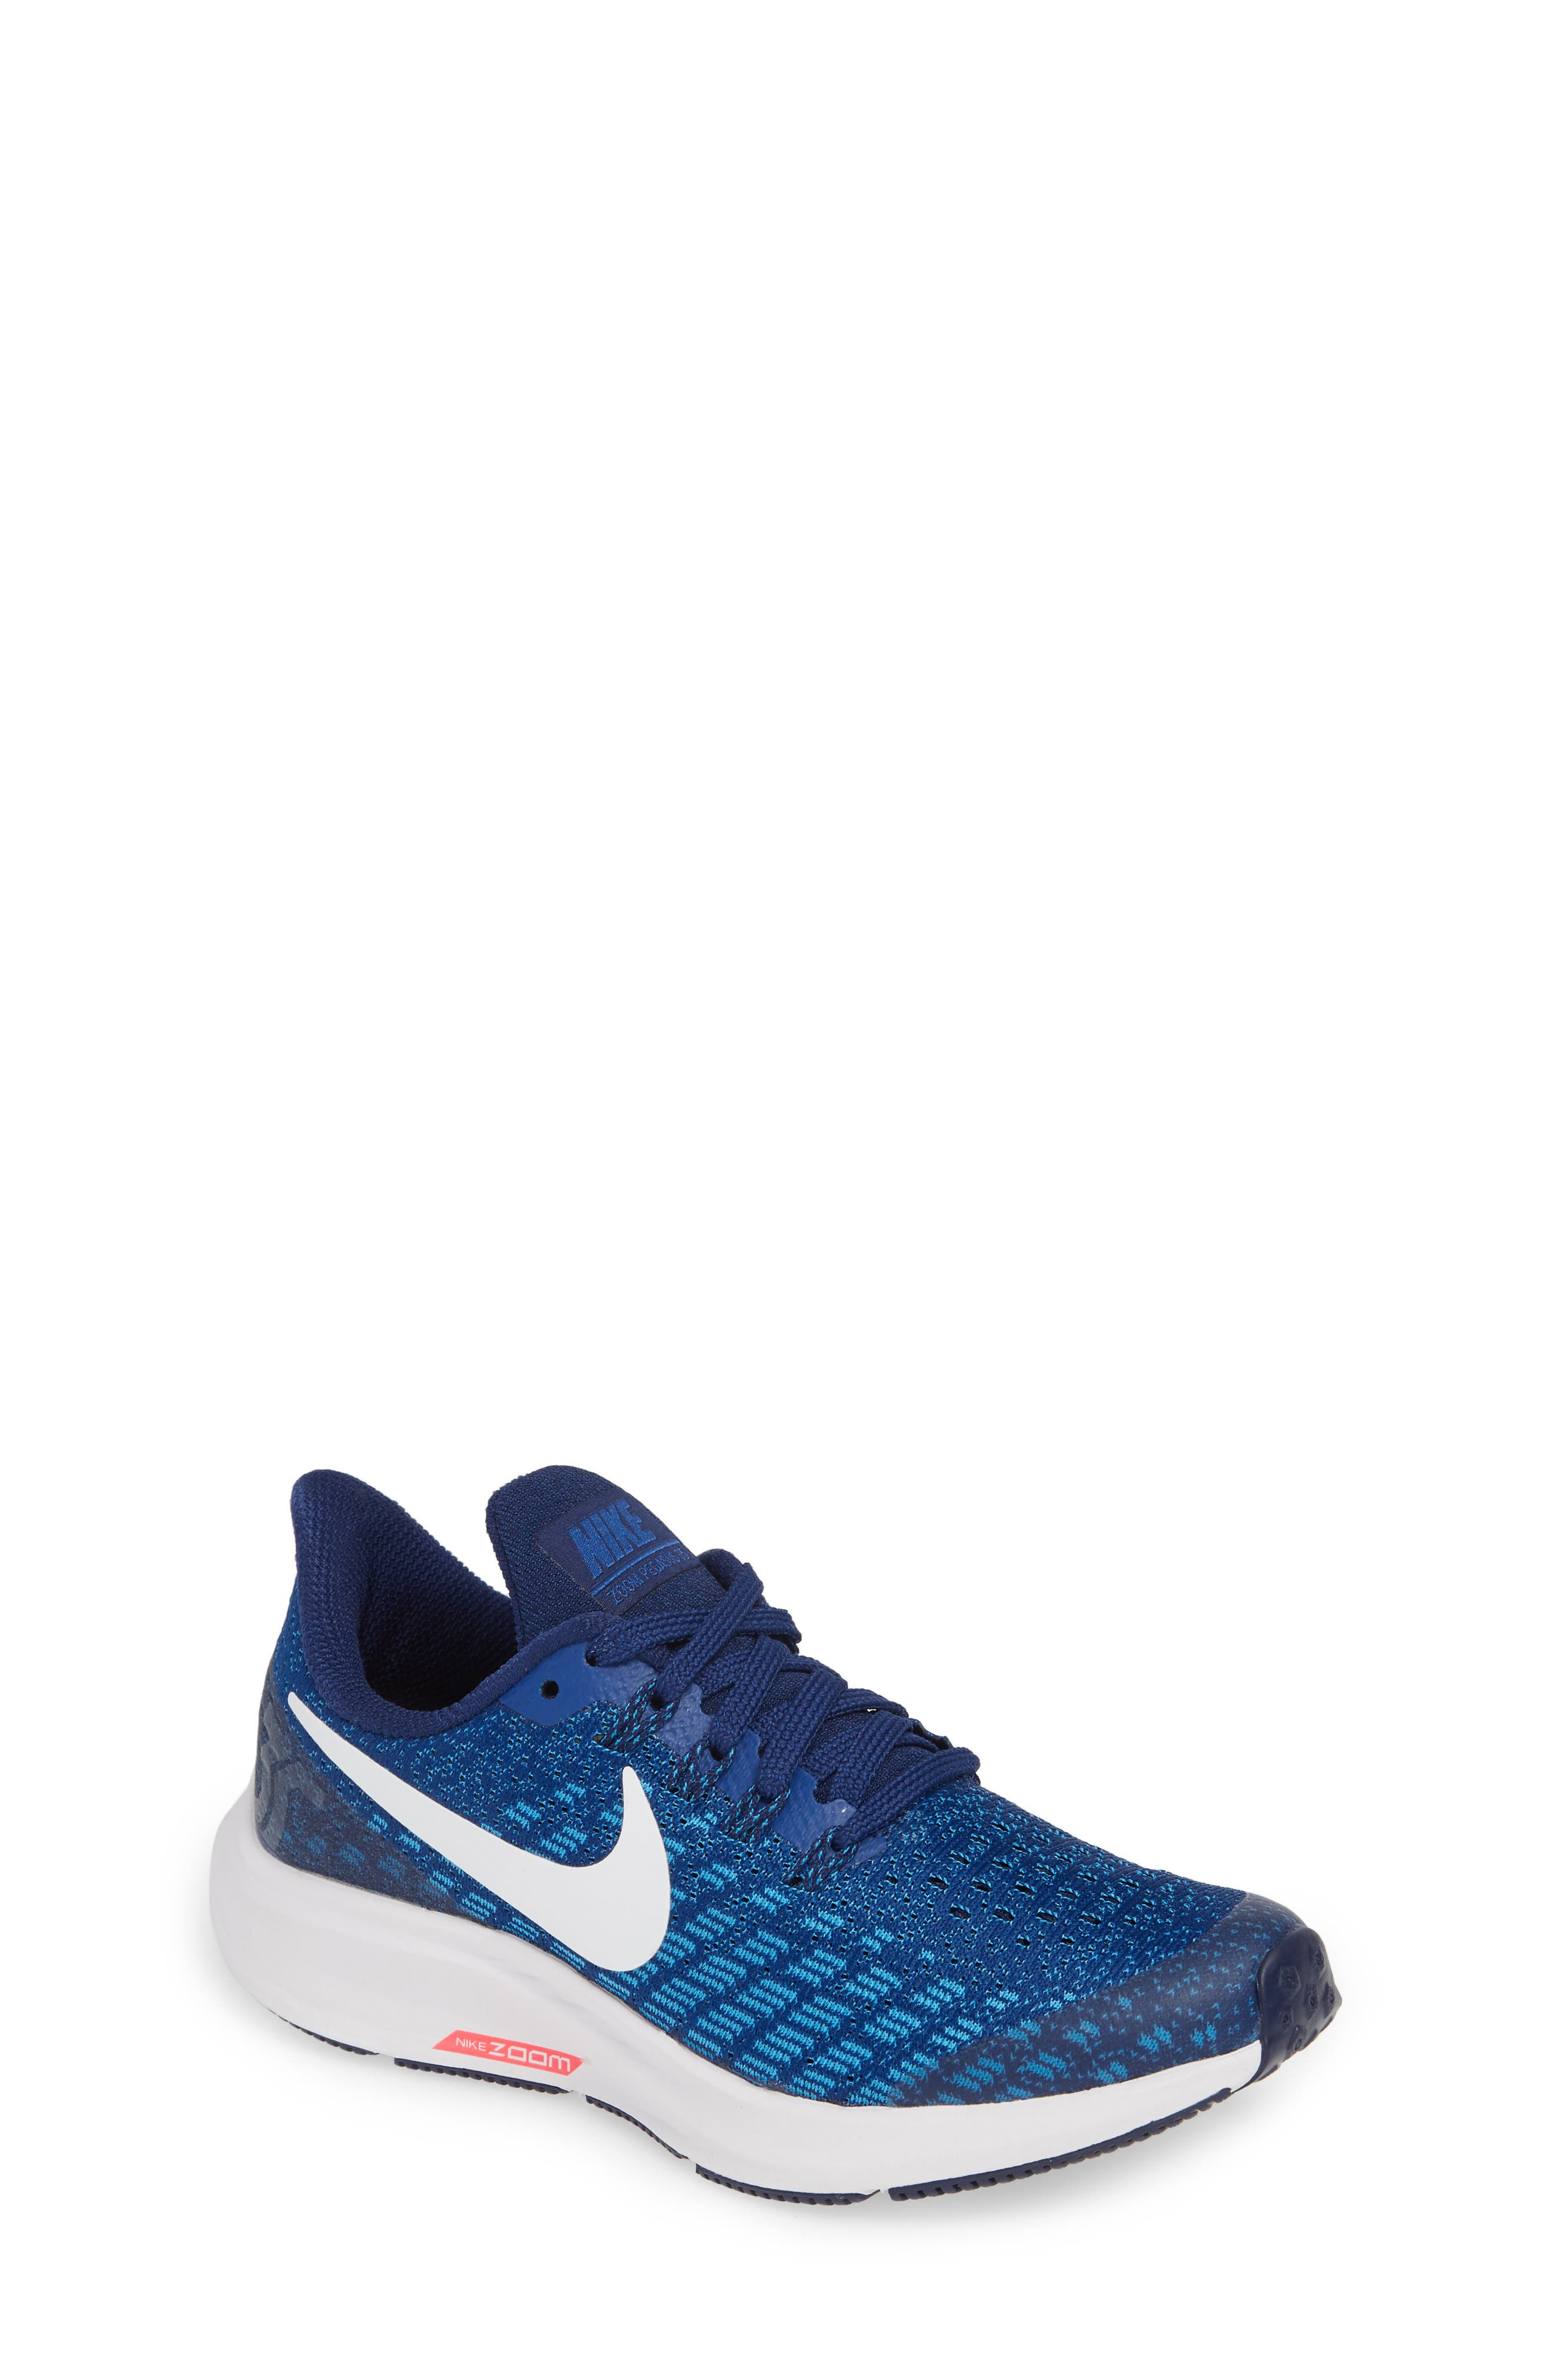 brand new 169a1 8275a nike zoom   Nordstrom